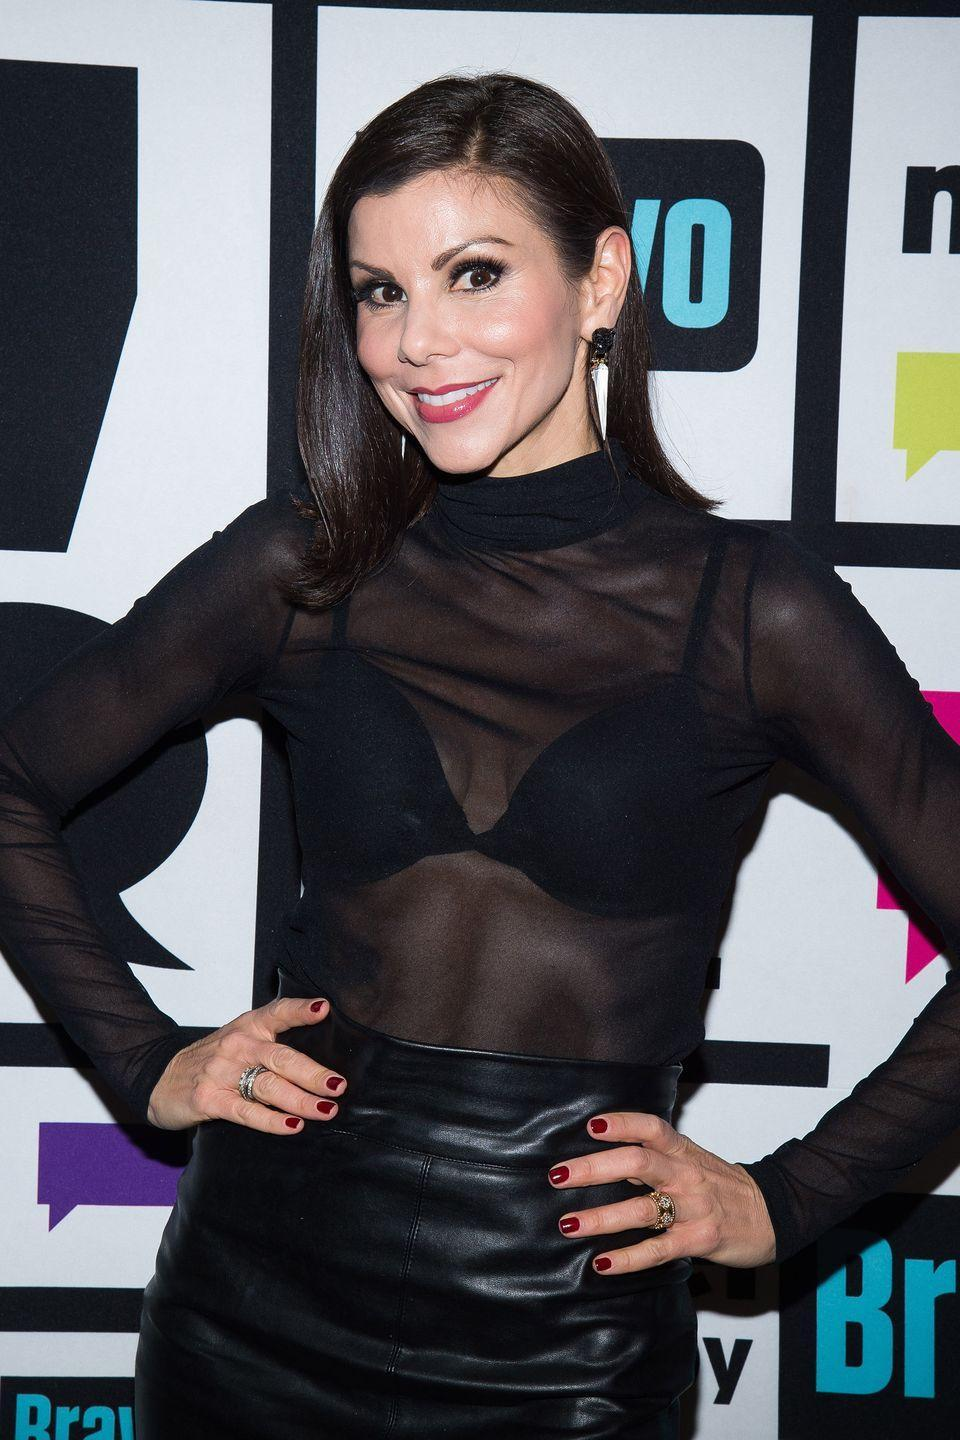 """<p>After five seasons, <em>Orange County</em> fan favorite Heather Dubrow surprised fans in 2016 when she announced that she was leaving the <em>Real Housewives</em> on her <a href=""""https://open.spotify.com/show/0hppHggaVvoil87Shx1G1M"""" rel=""""nofollow noopener"""" target=""""_blank"""" data-ylk=""""slk:podcast"""" class=""""link rapid-noclick-resp"""">podcast</a>. """"After a lot of careful thought and deliberation, I have decided not to return to <em>RHOC</em> this season. I'm so proud to have been a part of such an iconic piece of pop culture,"""" Heather said in a statement to <em>The Daily Dish</em>. """"At this point in my life, I have decided to go in another direction and do what's best for my family and career.""""</p>"""